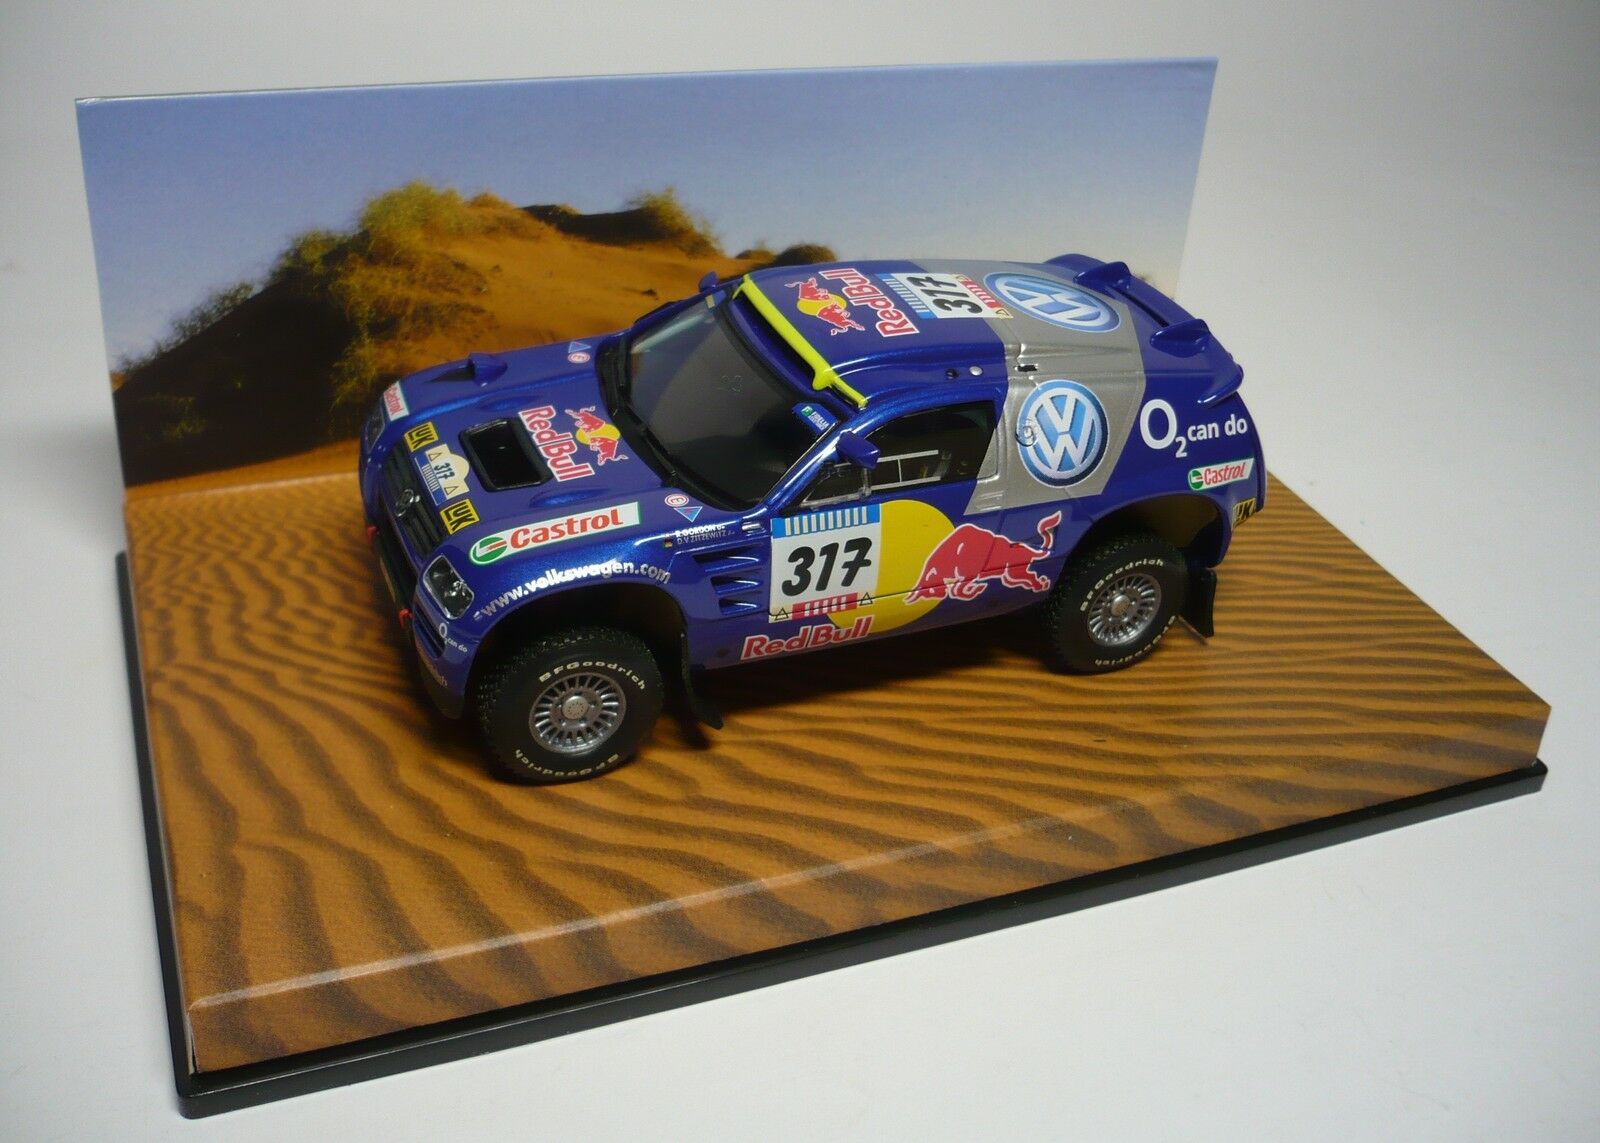 UN VW RACE TOUAREG  317 PARIS DAKAR 2005 1 43 MINICHAMPS